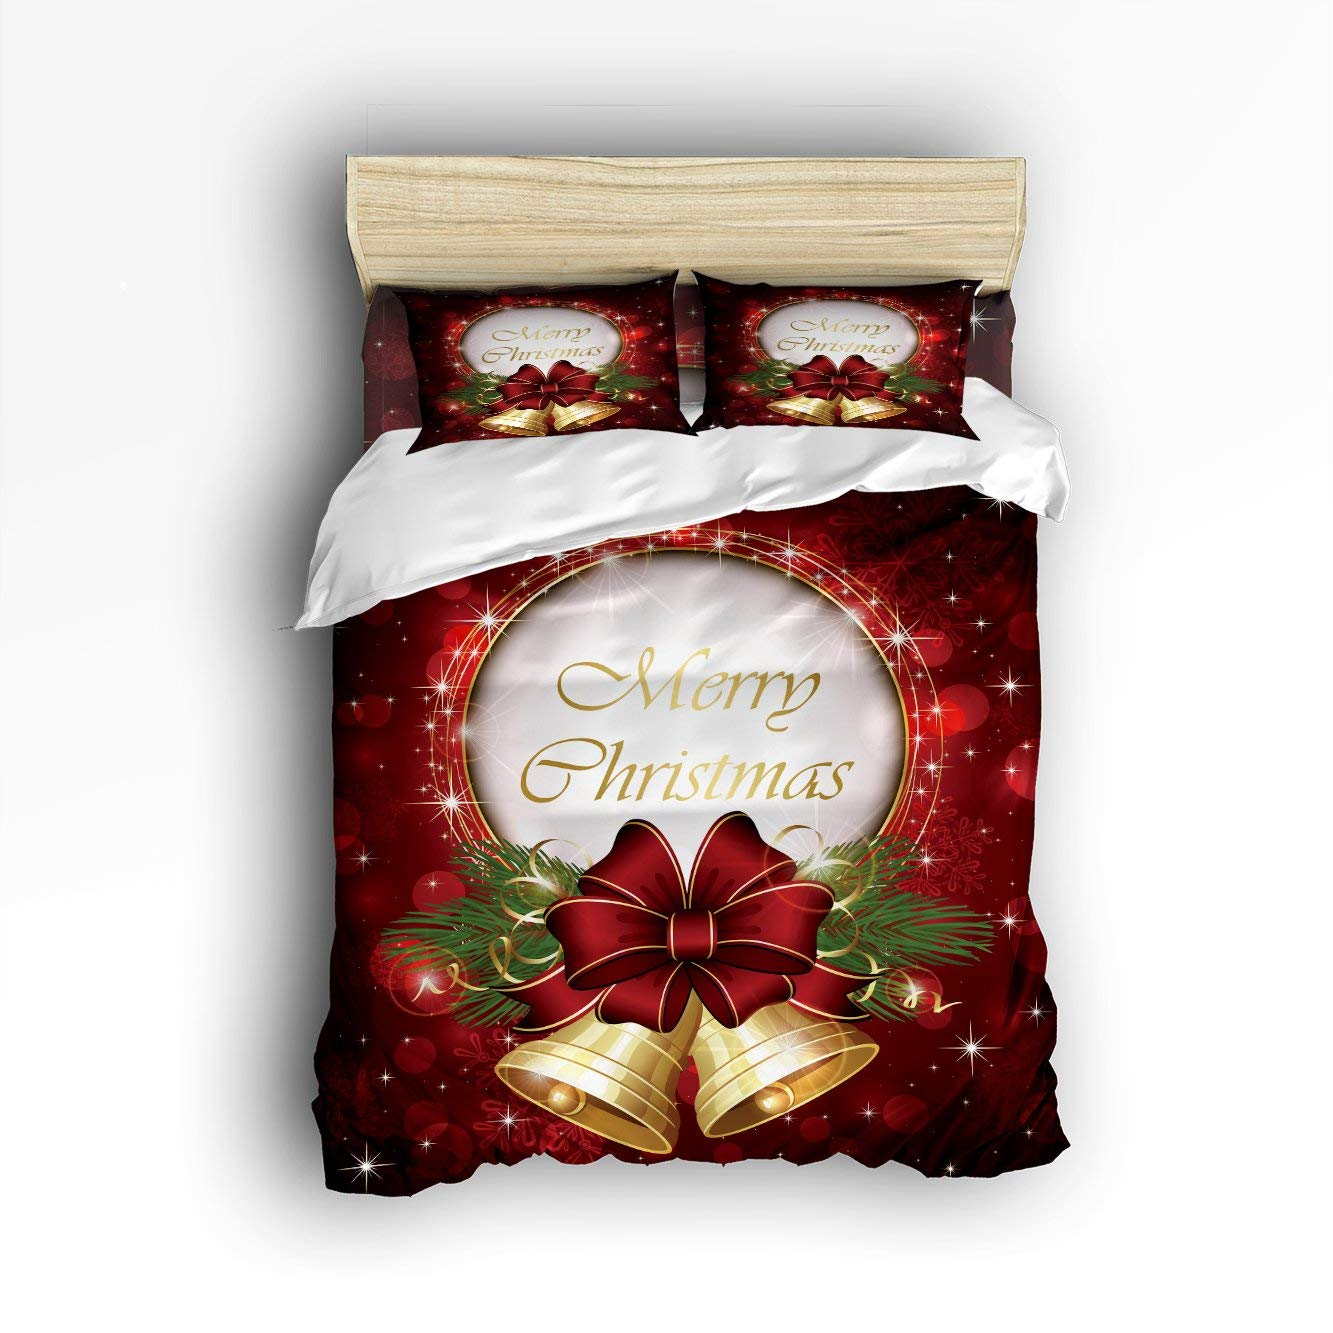 Family Decor Christmas Duvet Cover Set - Buy Christmas Duvet Covers